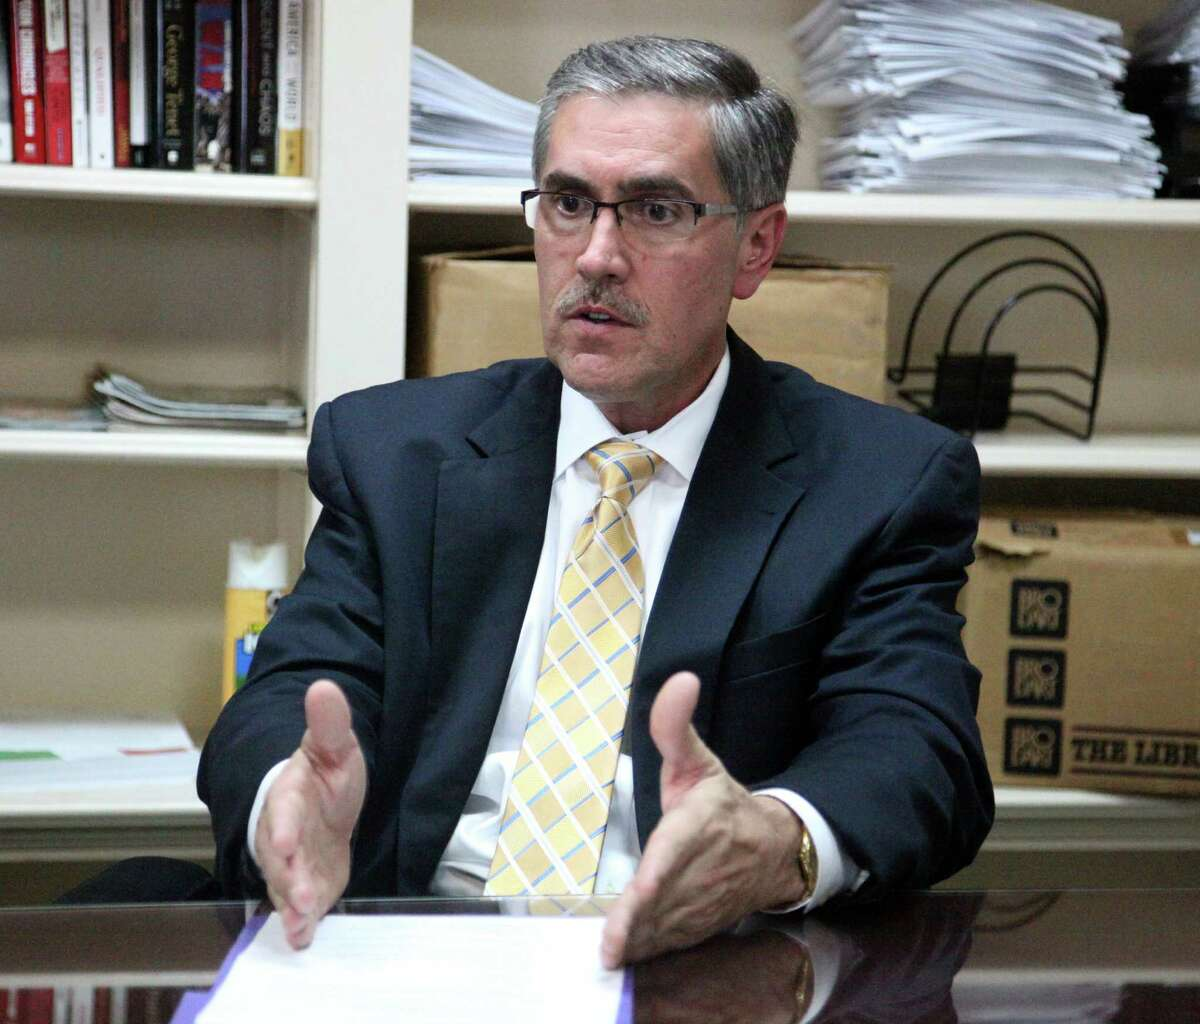 At issue is whether Pat DiGiovanni violated the ethics code by being on the selection panel for a $300 million contract while negotiating a job with a nonprofit whose executive board includes the head of the company that won the pact.